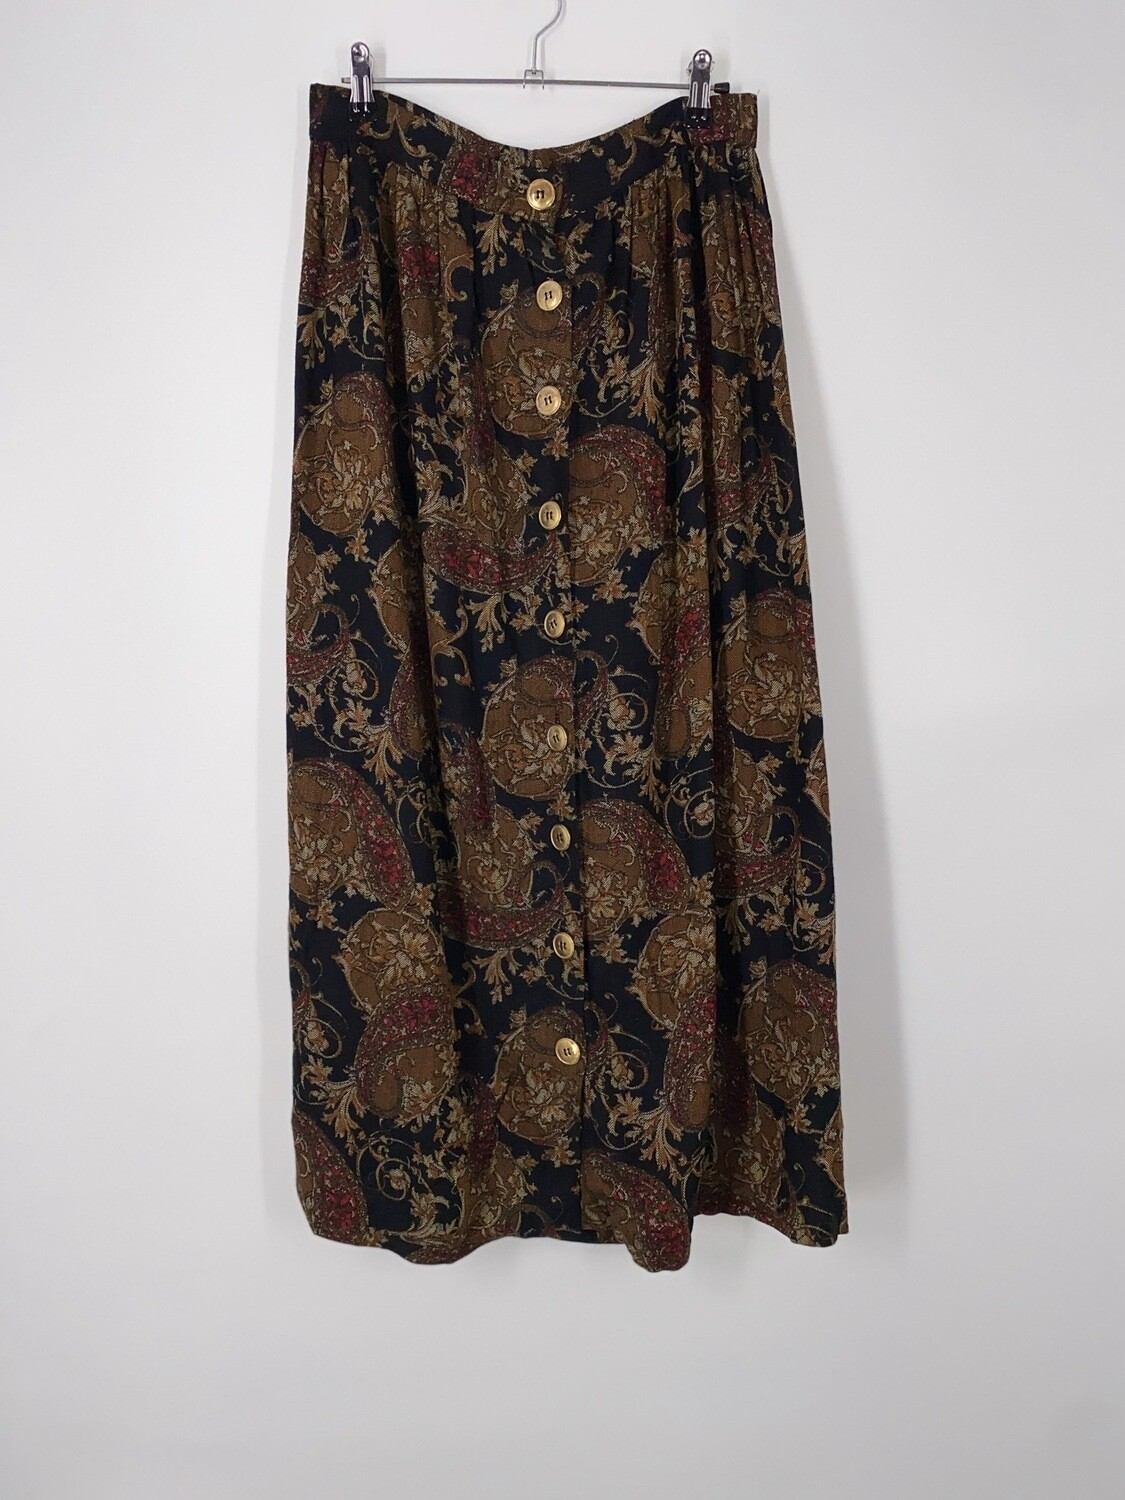 Patterned Button Up Skirt Size M